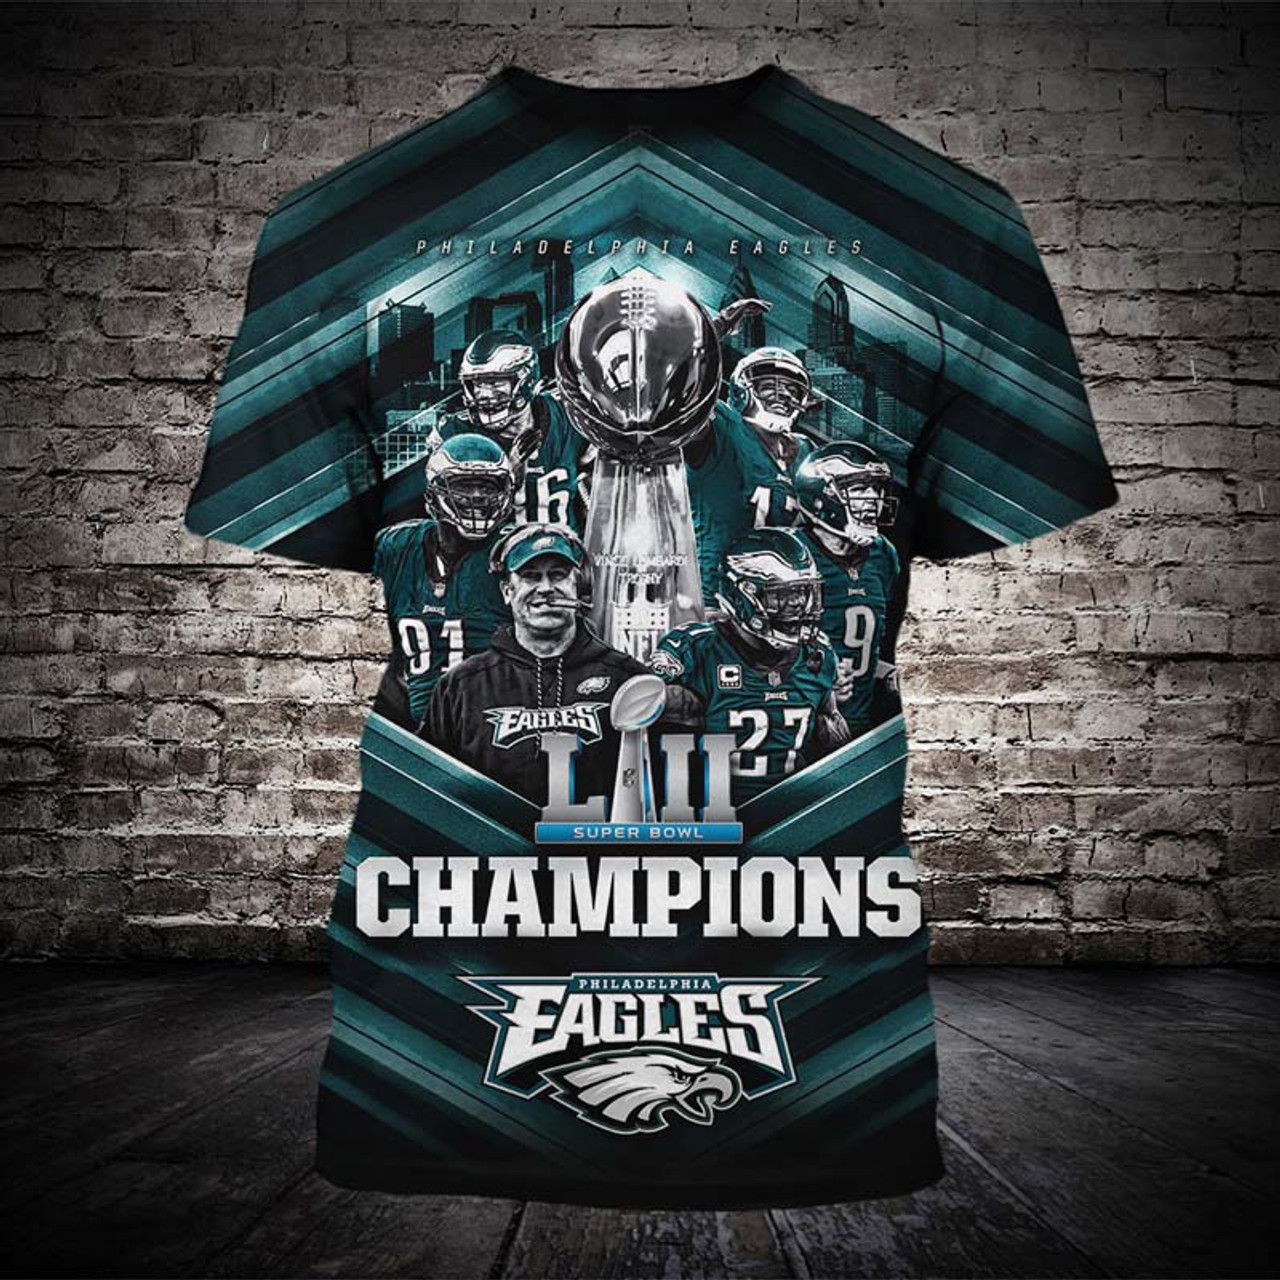 low priced b2662 988a9 **(OFFICIALLY-LICENSED-N.F.L.PHILADELPHIA-EAGLES-TEES/SUPER-BOWL-LII-CHAMPIONS  & OFFICIAL-TEAM-LOGOS/NICE-CUSTOM-3D-GRAPHIC-PRINTED-ALL-OVER-DESIGN,TR...